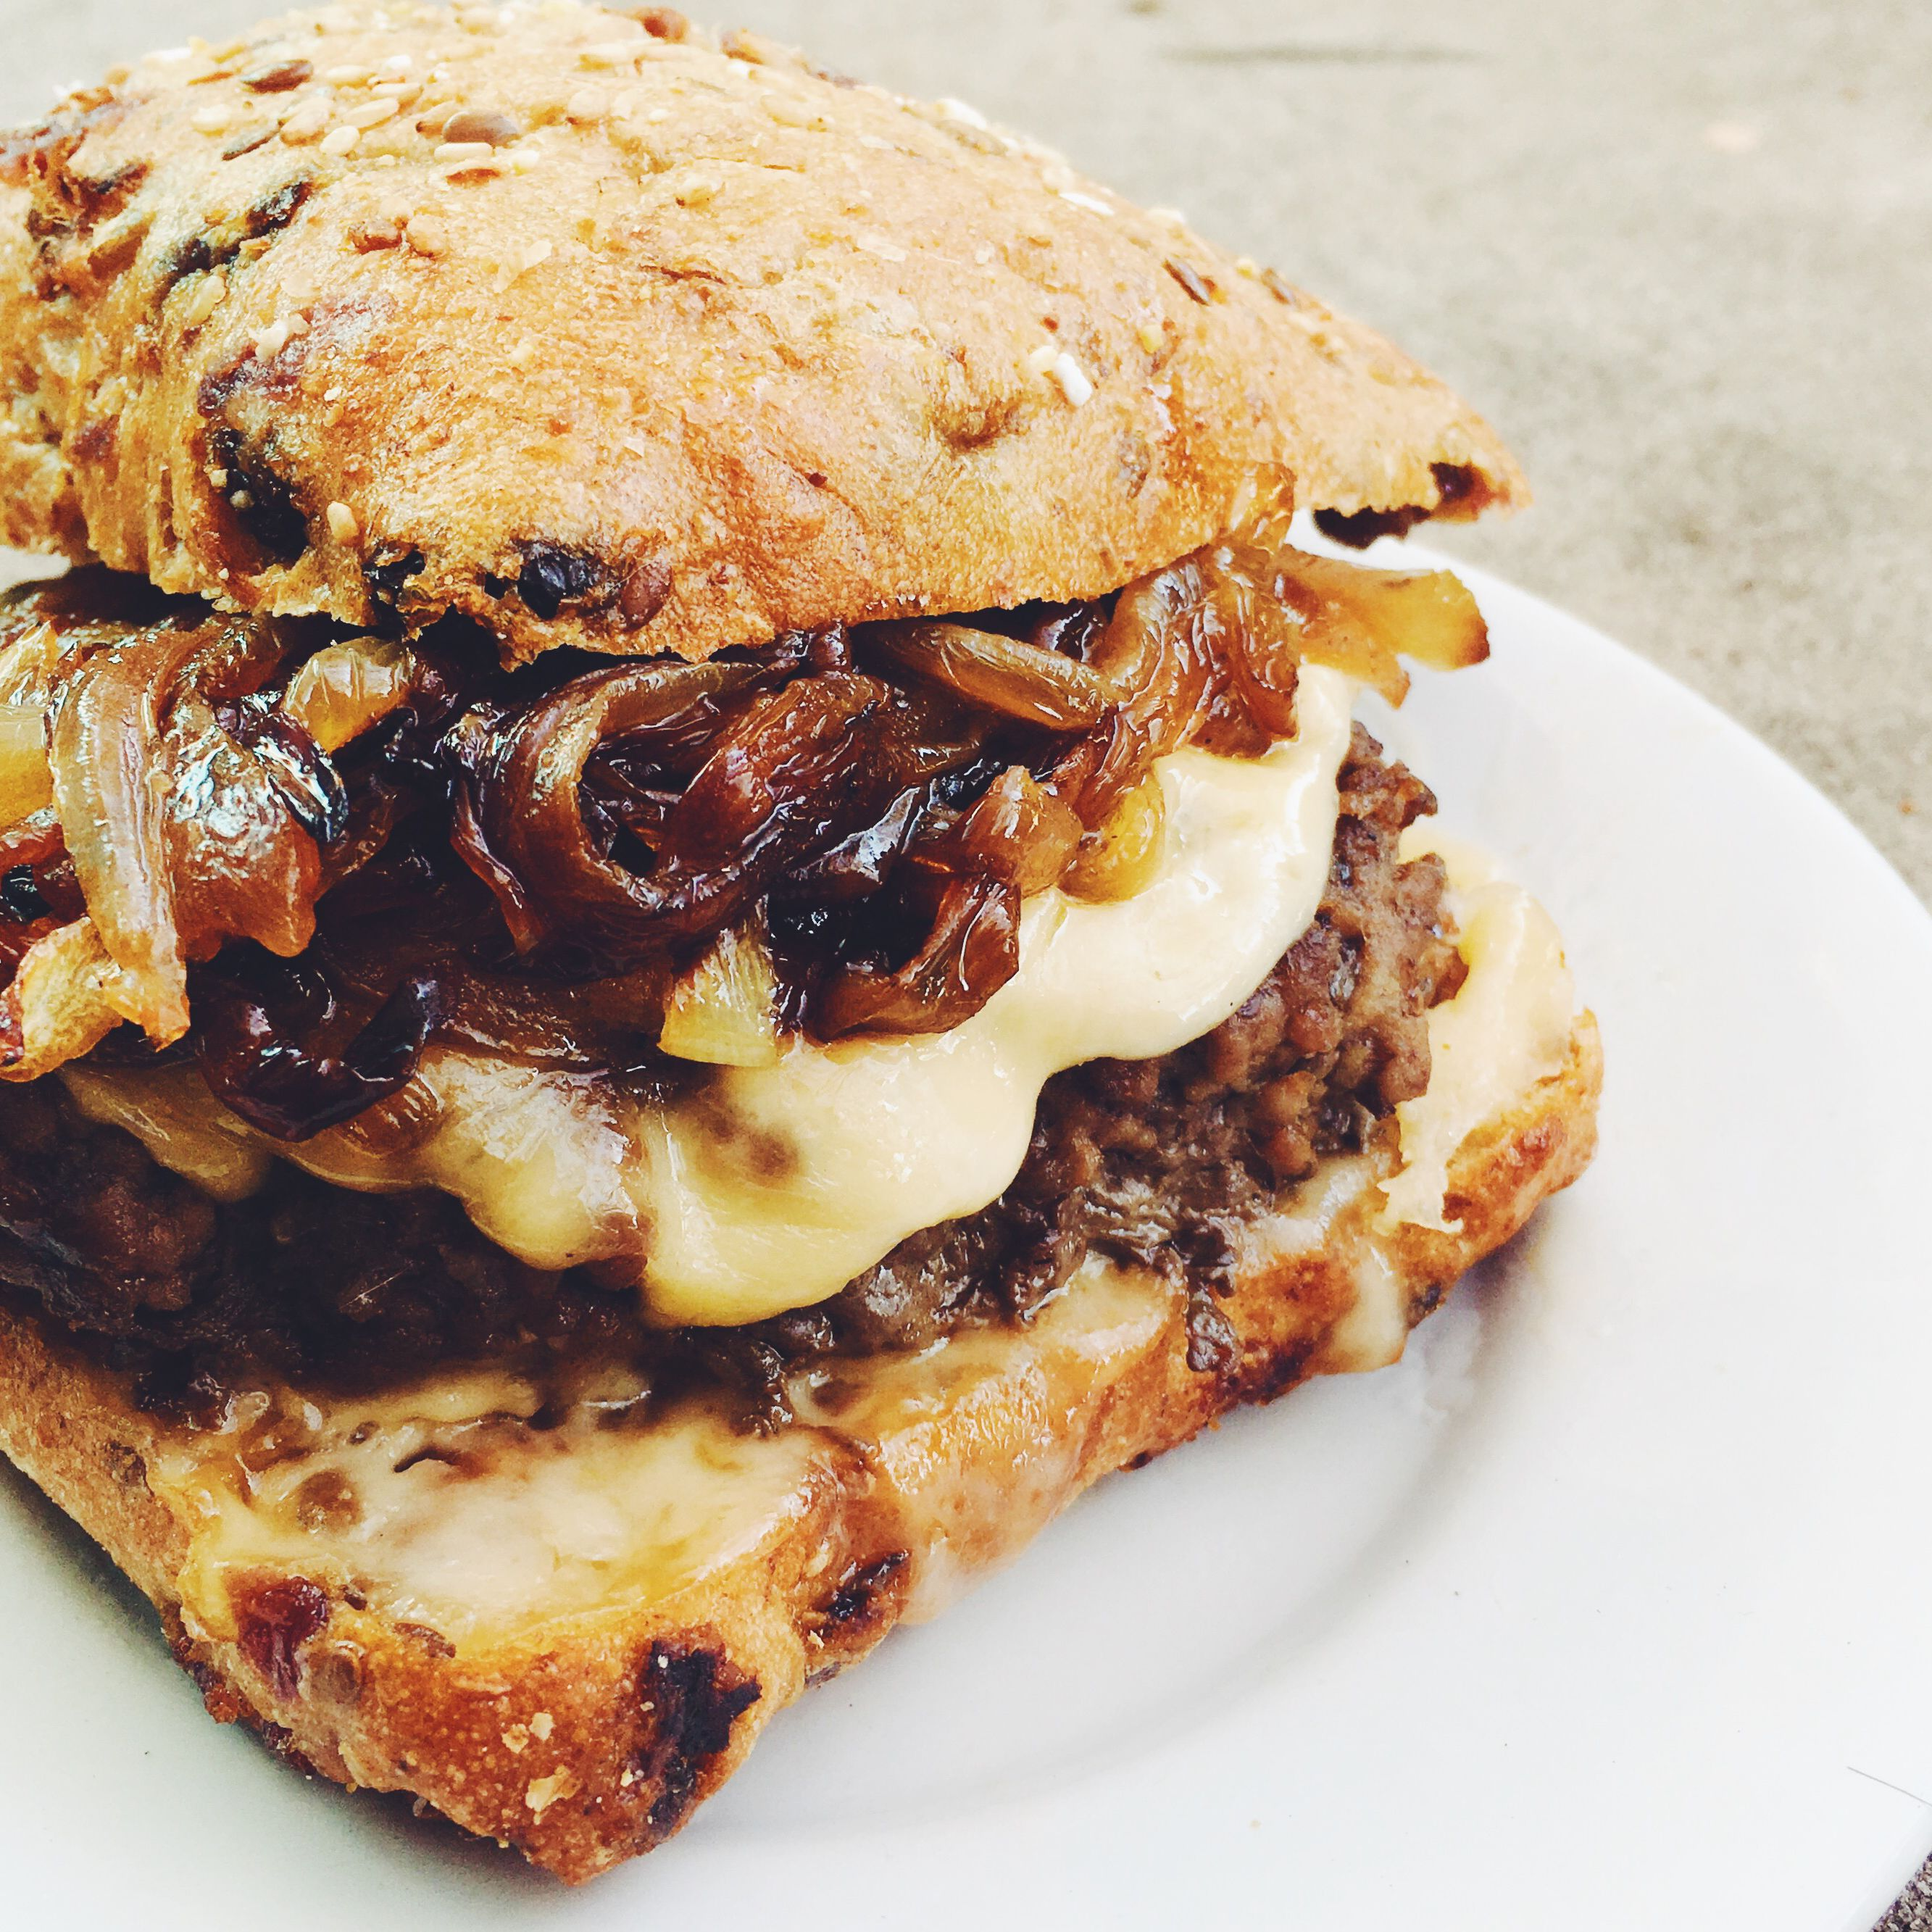 French Onion Soup Burger With Caramelized Onions, Gruyere and Comte